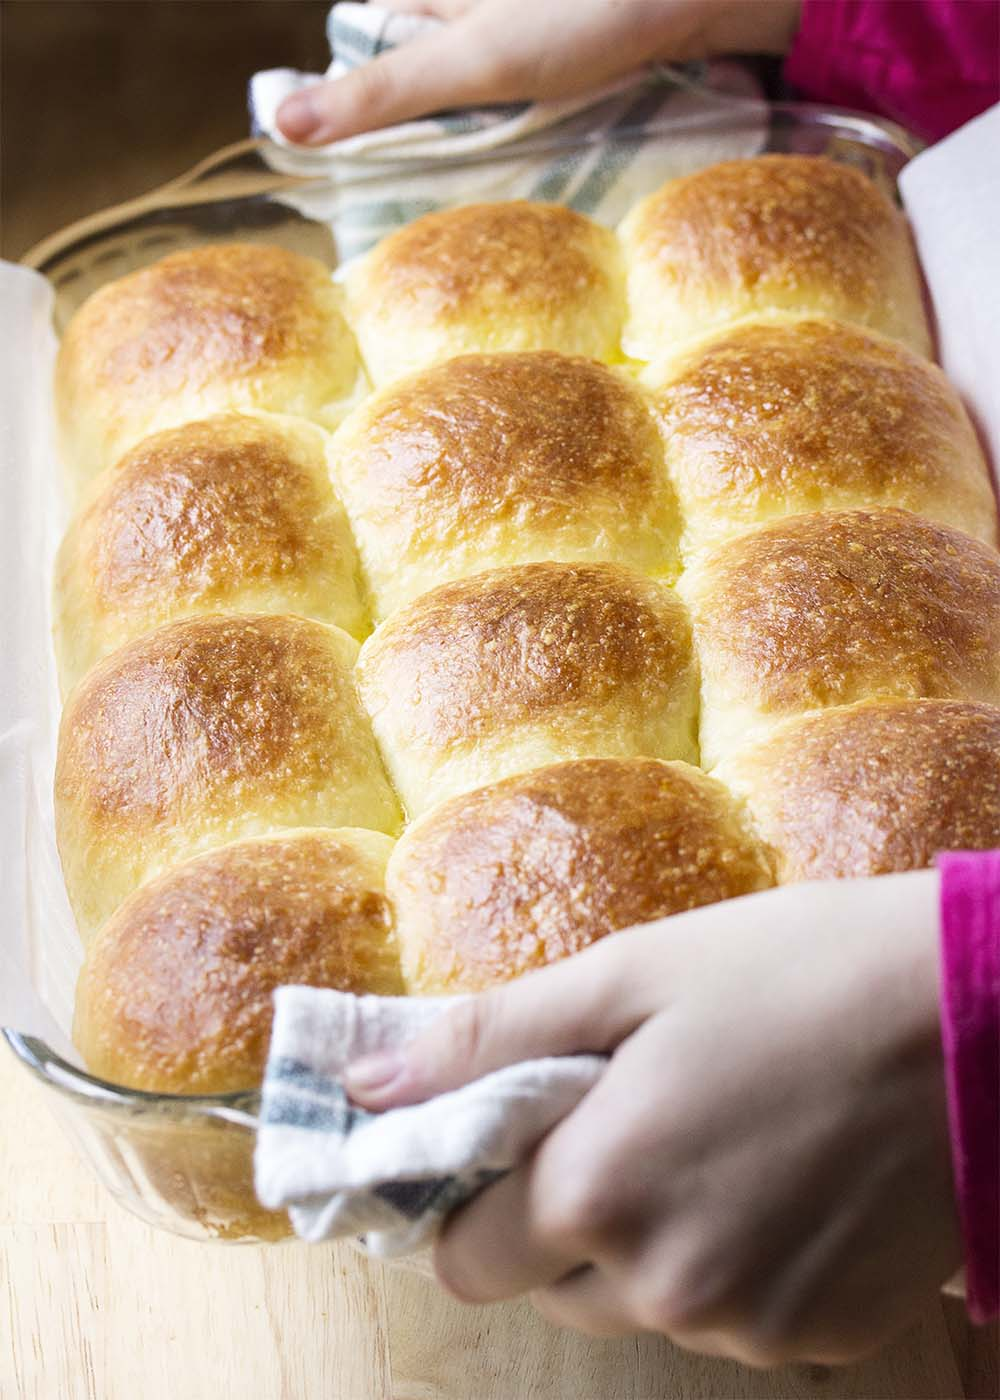 Hands holding up the baking pan of finished dinner rolls all glossy from being brushed with melted butter.